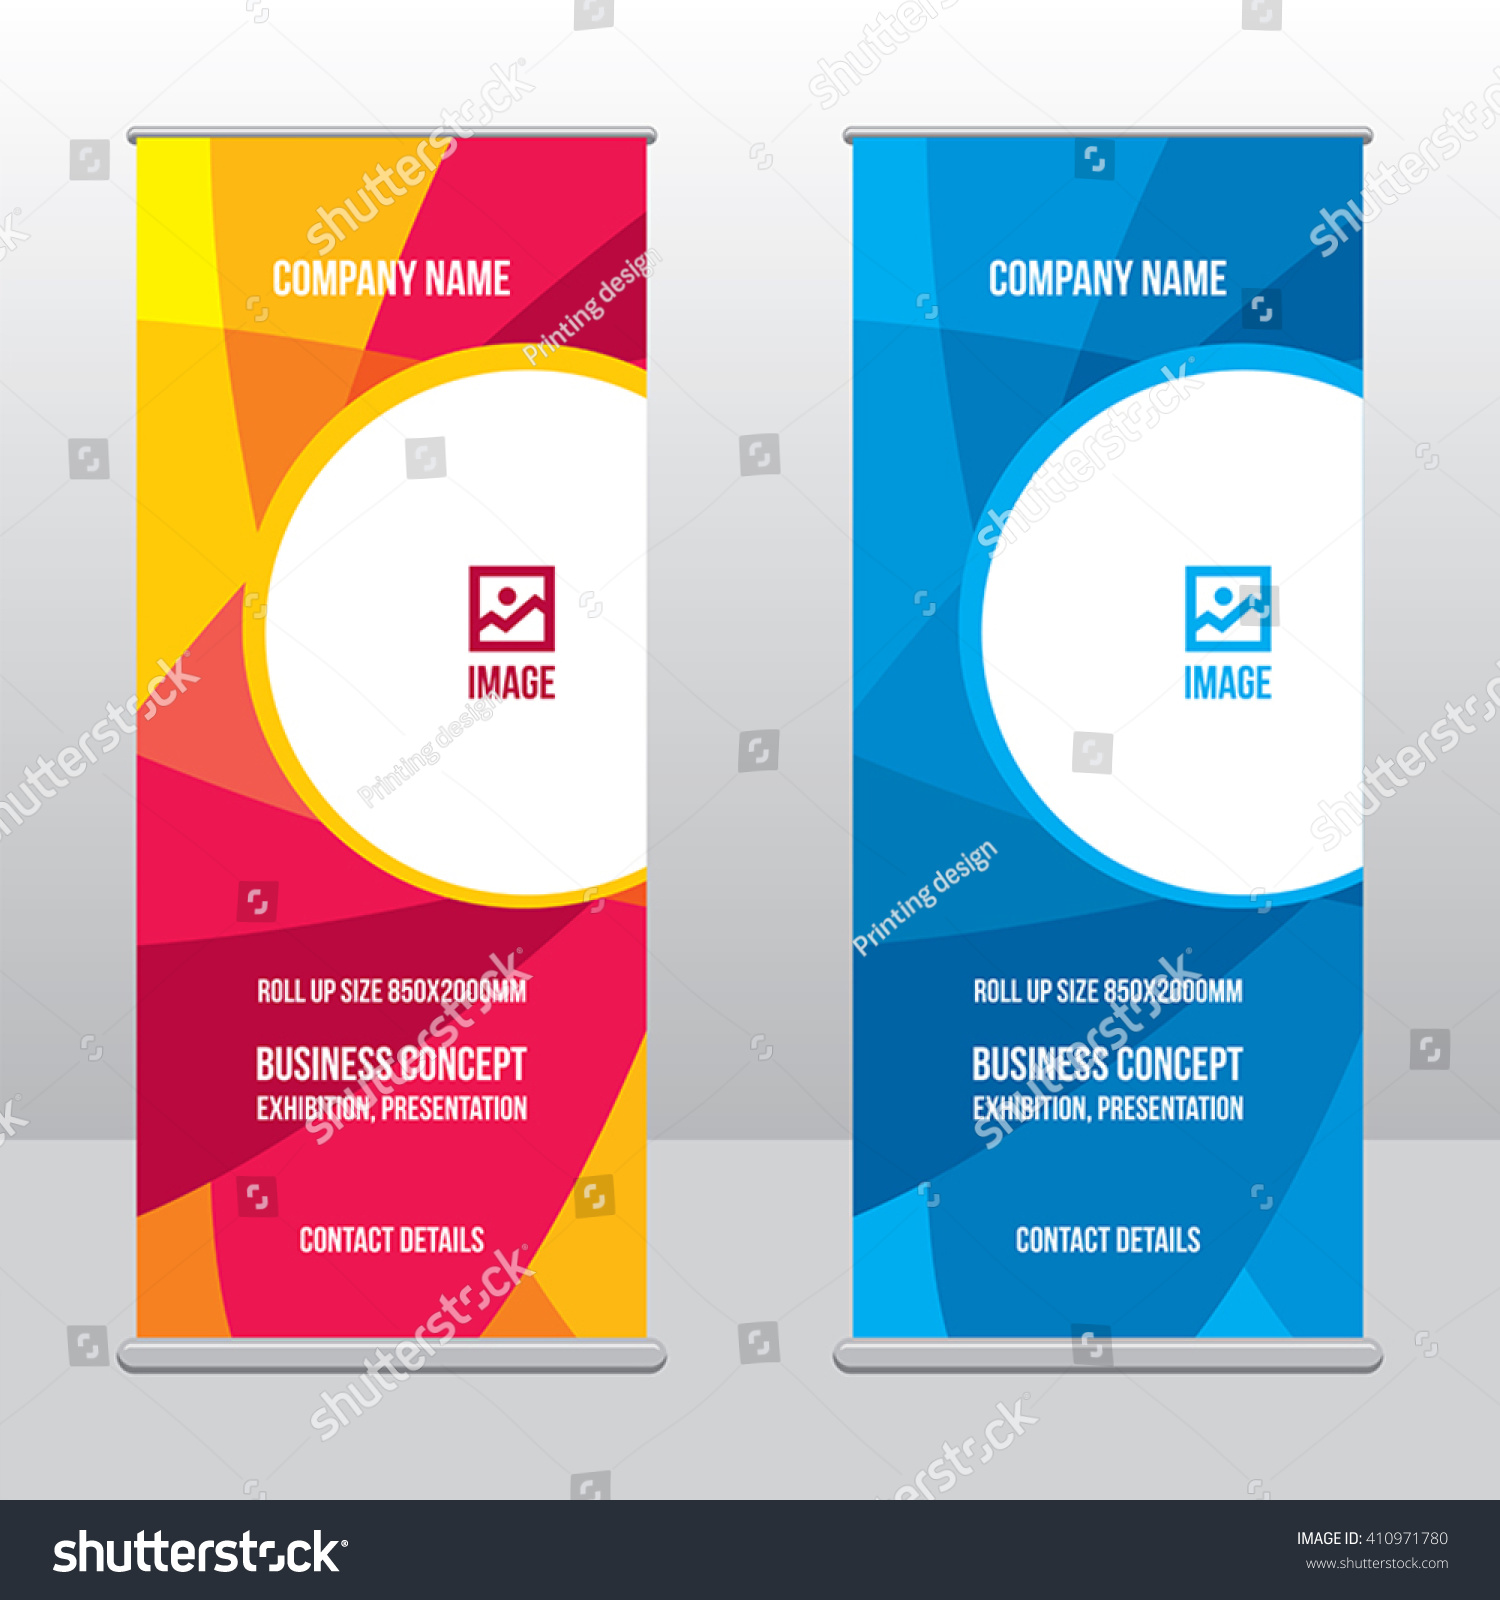 Modern Exhibition Stand Vector : Banner rollup design business concept graphic stock vector